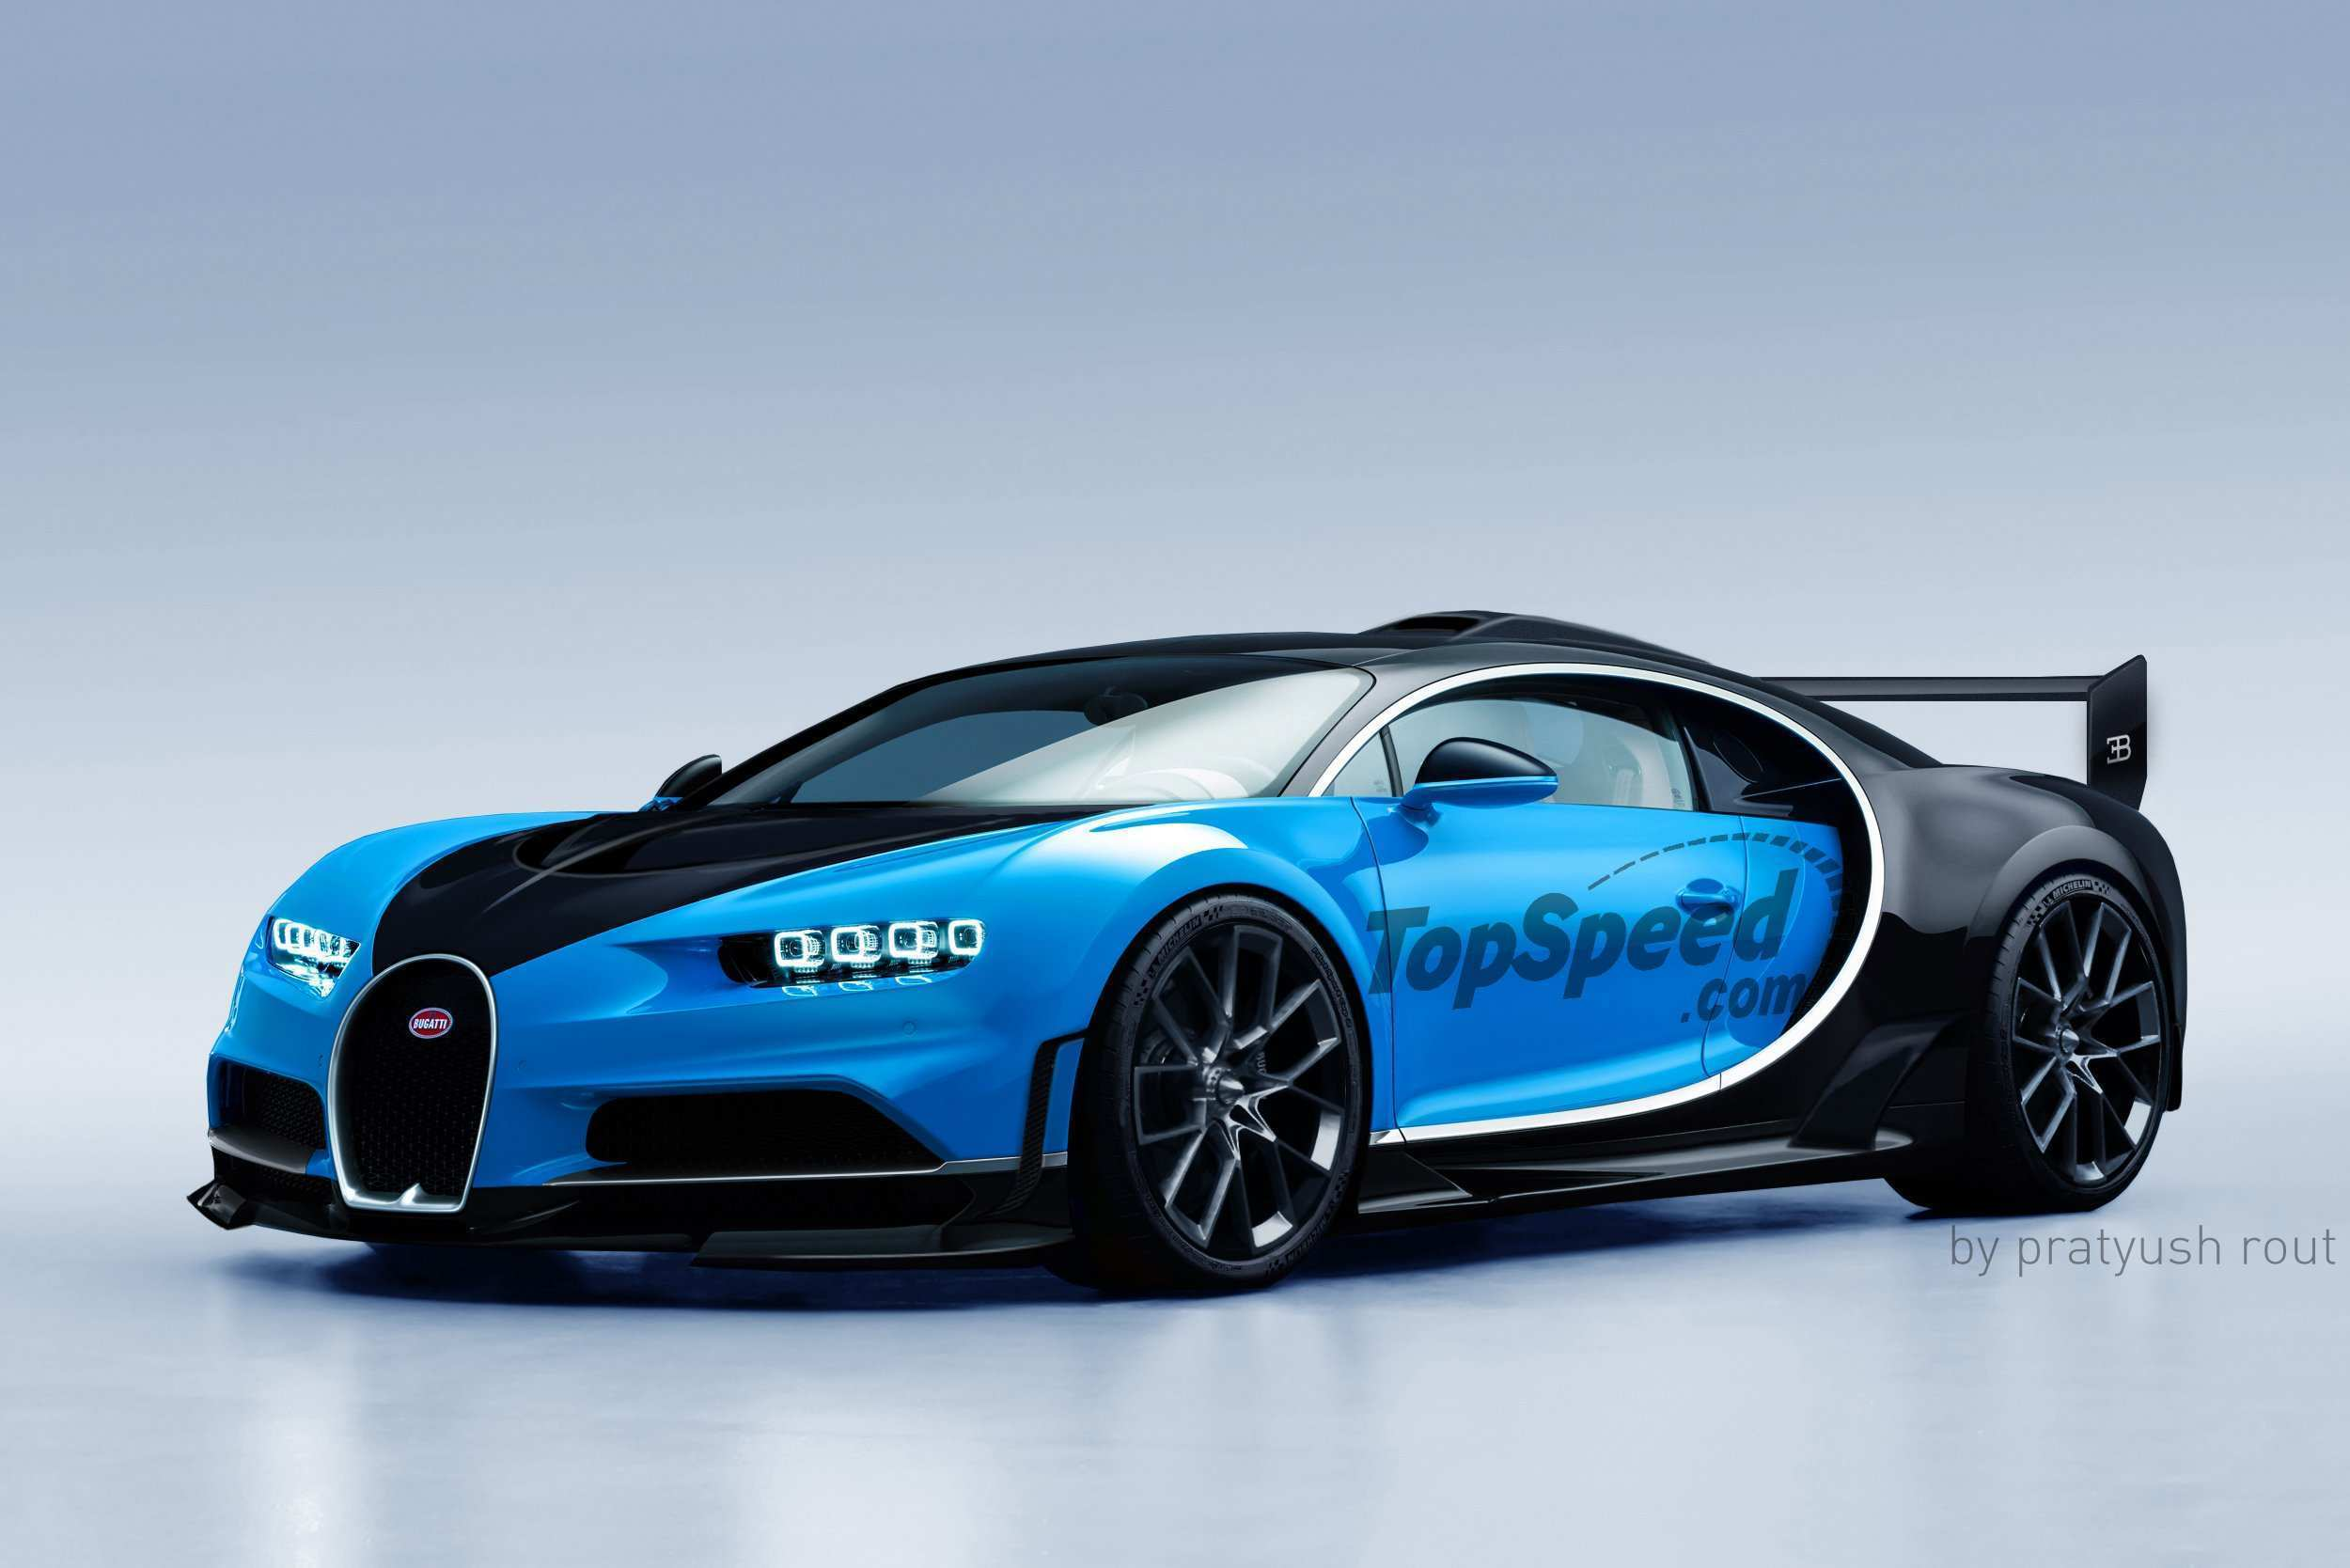 49 All New 2020 Bugatti Veyron Wallpaper with 2020 Bugatti Veyron